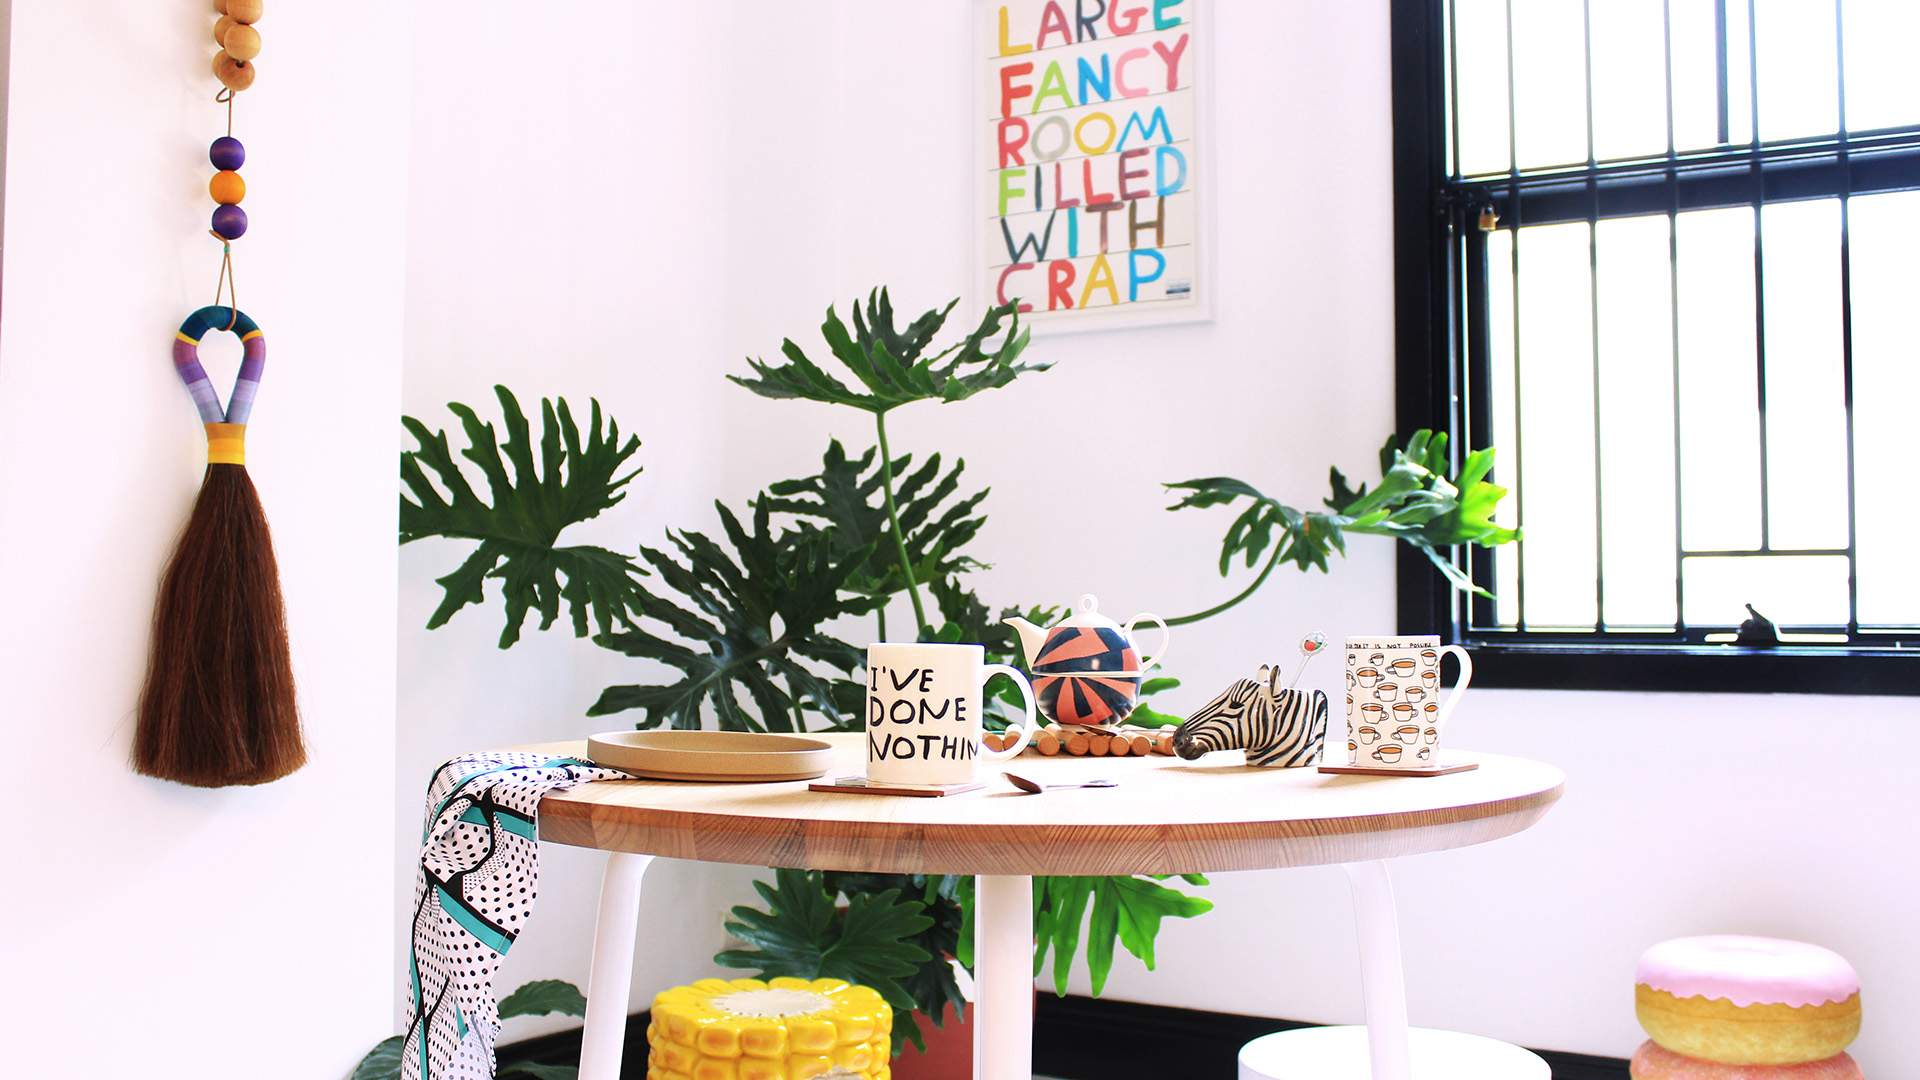 Where to Find One-of-a-Kind Gifts That'll Help Put You in Their Good Books